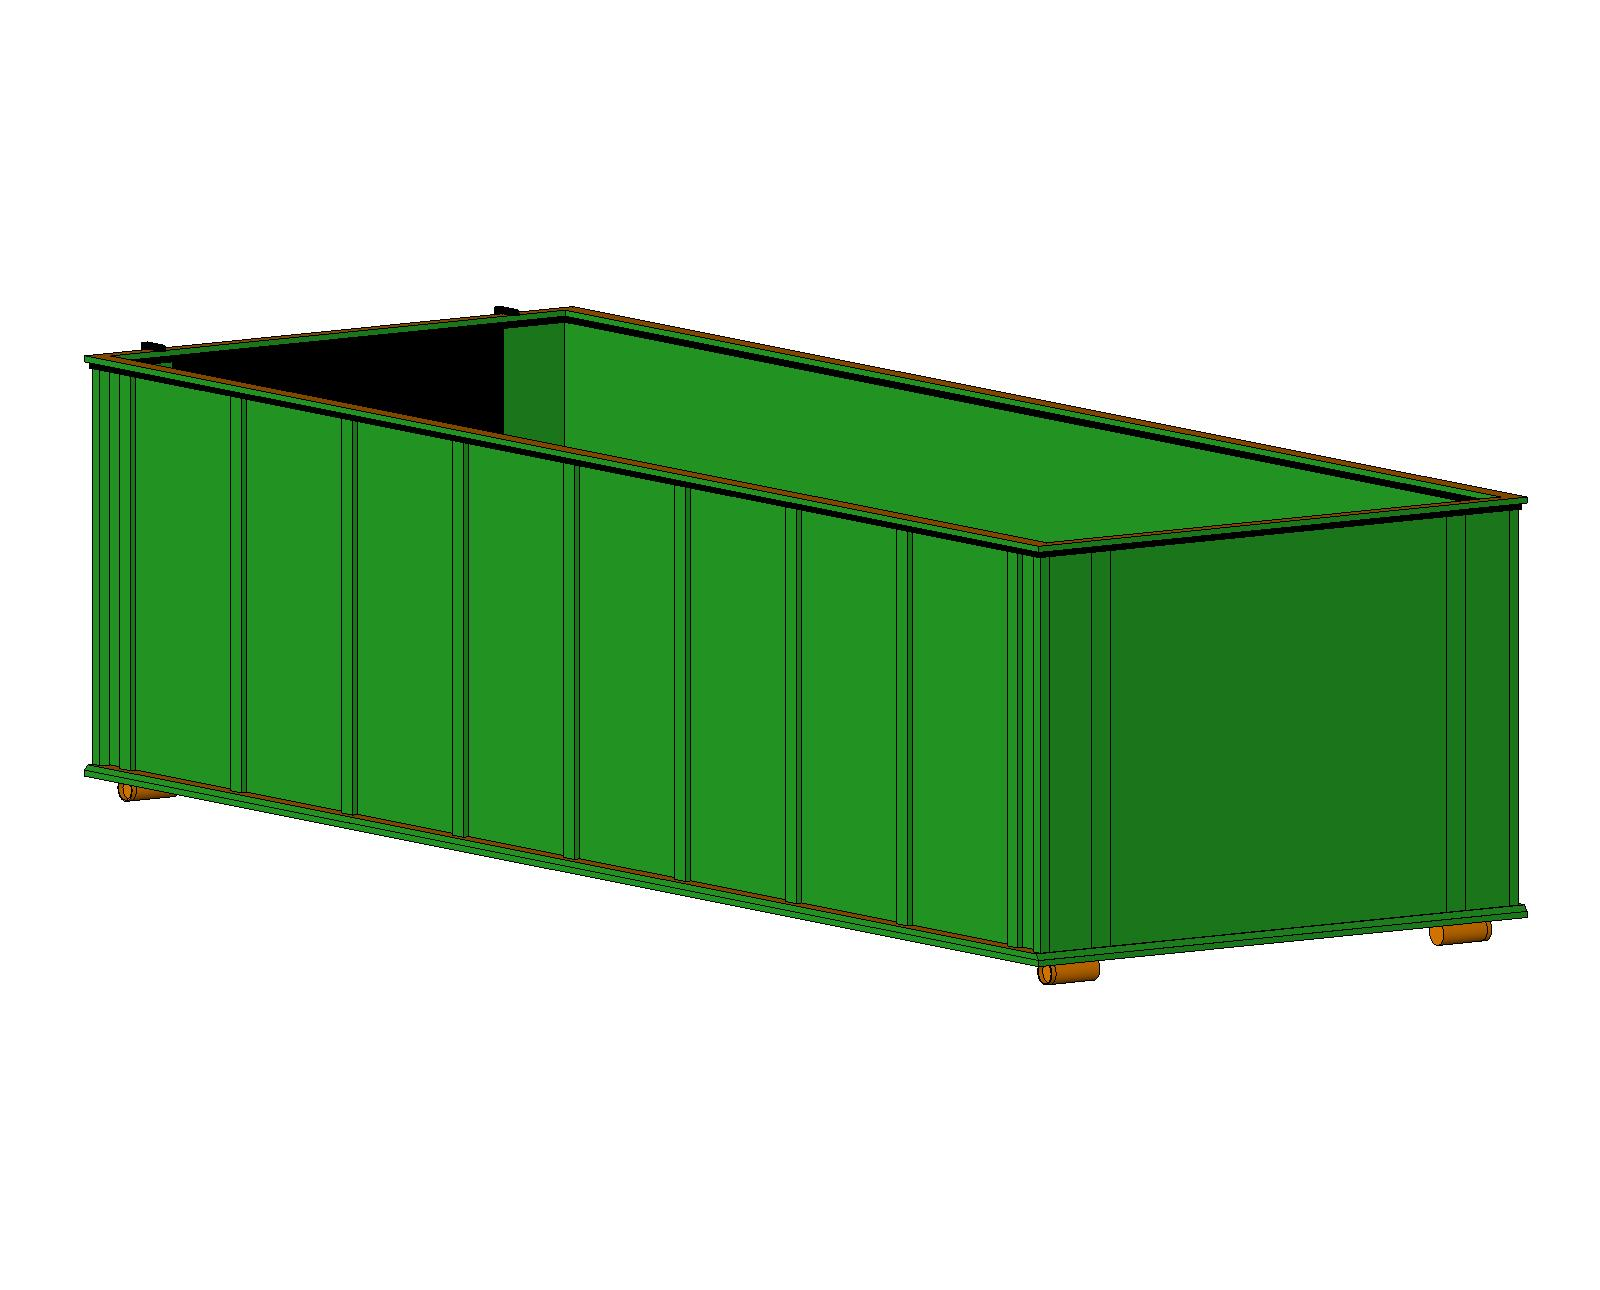 Generic Cleaning And Waste Management Bim Objects Families